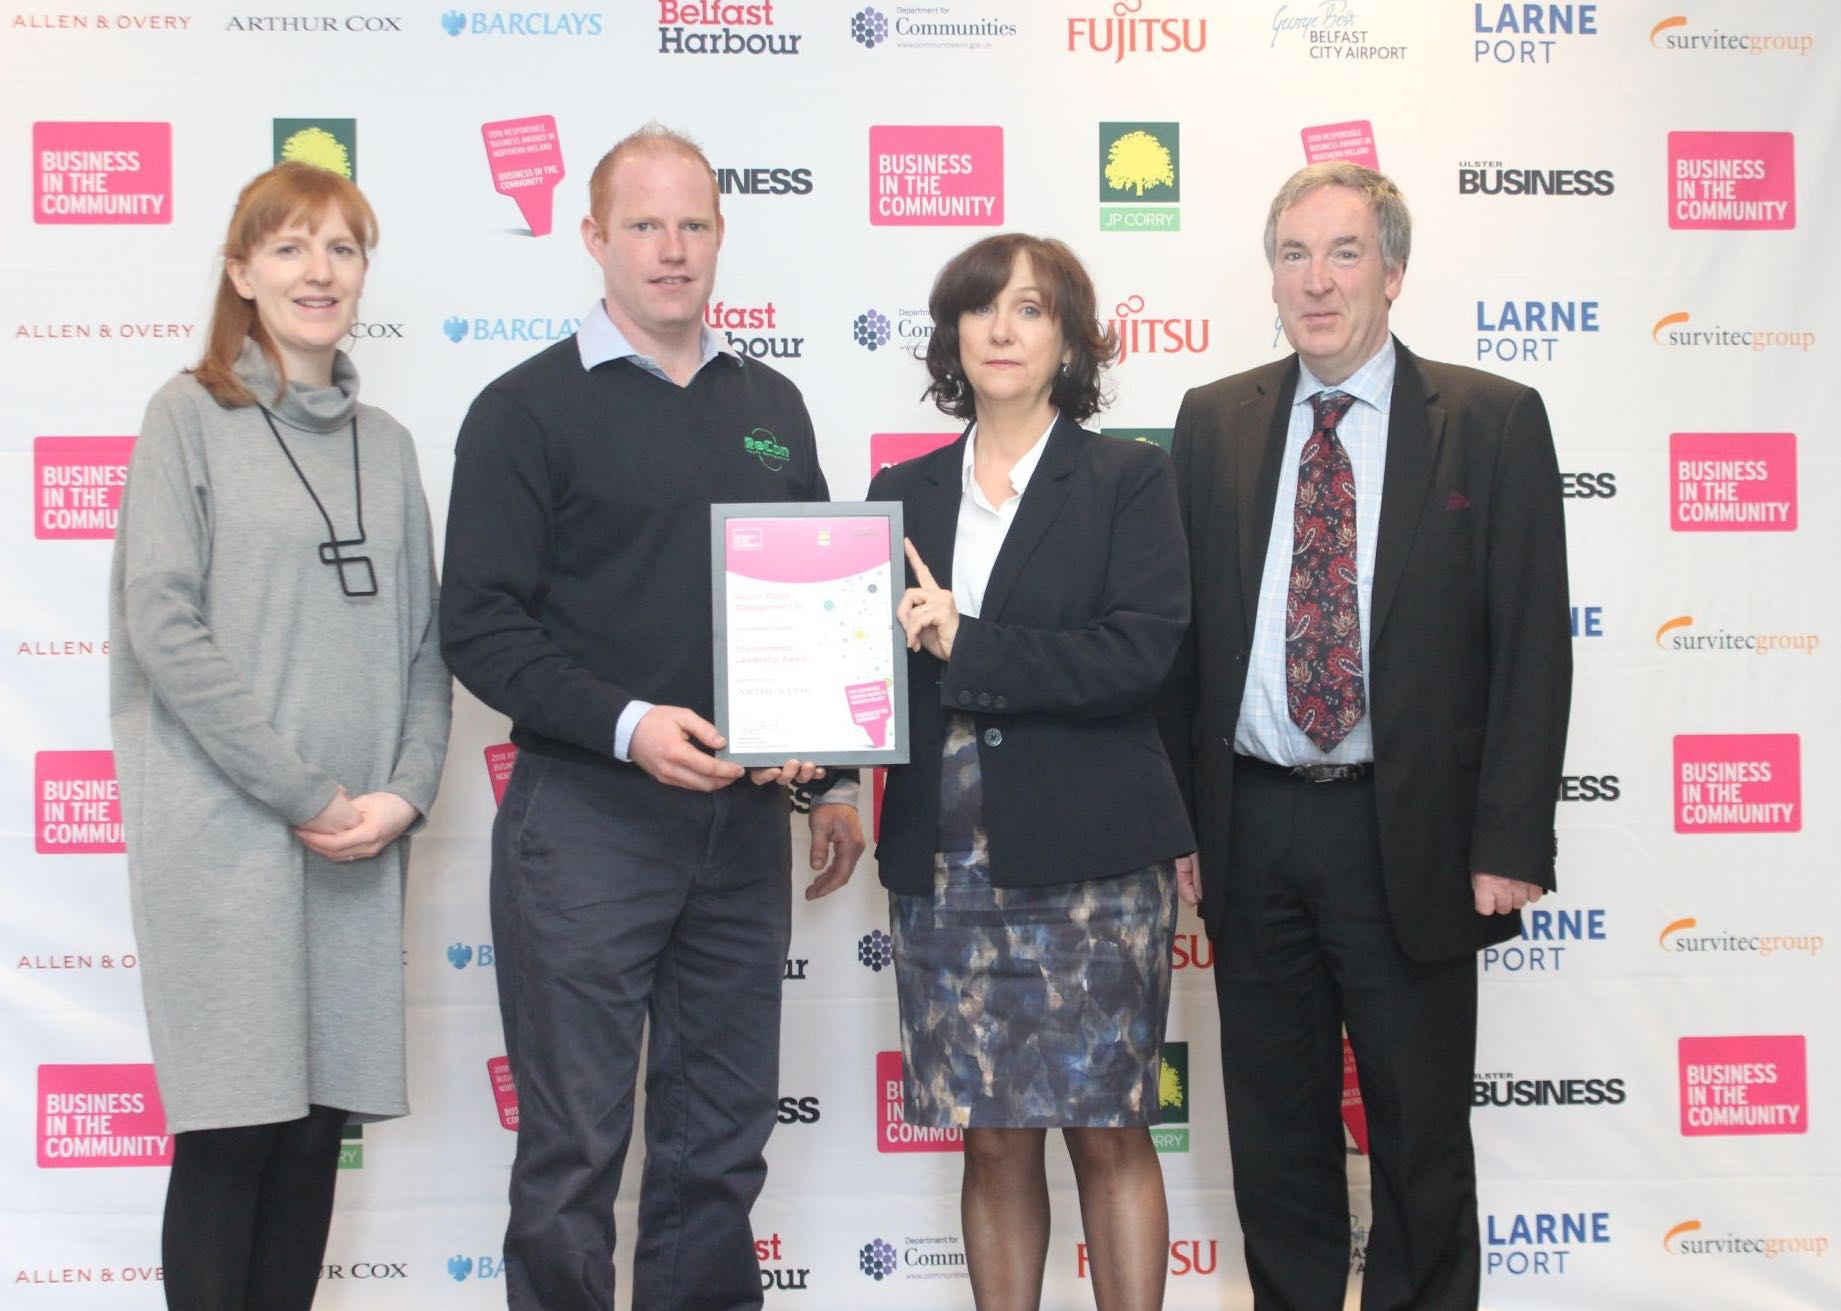 ReCon Waste Management Ltd shortlisted for Responsible Business Award